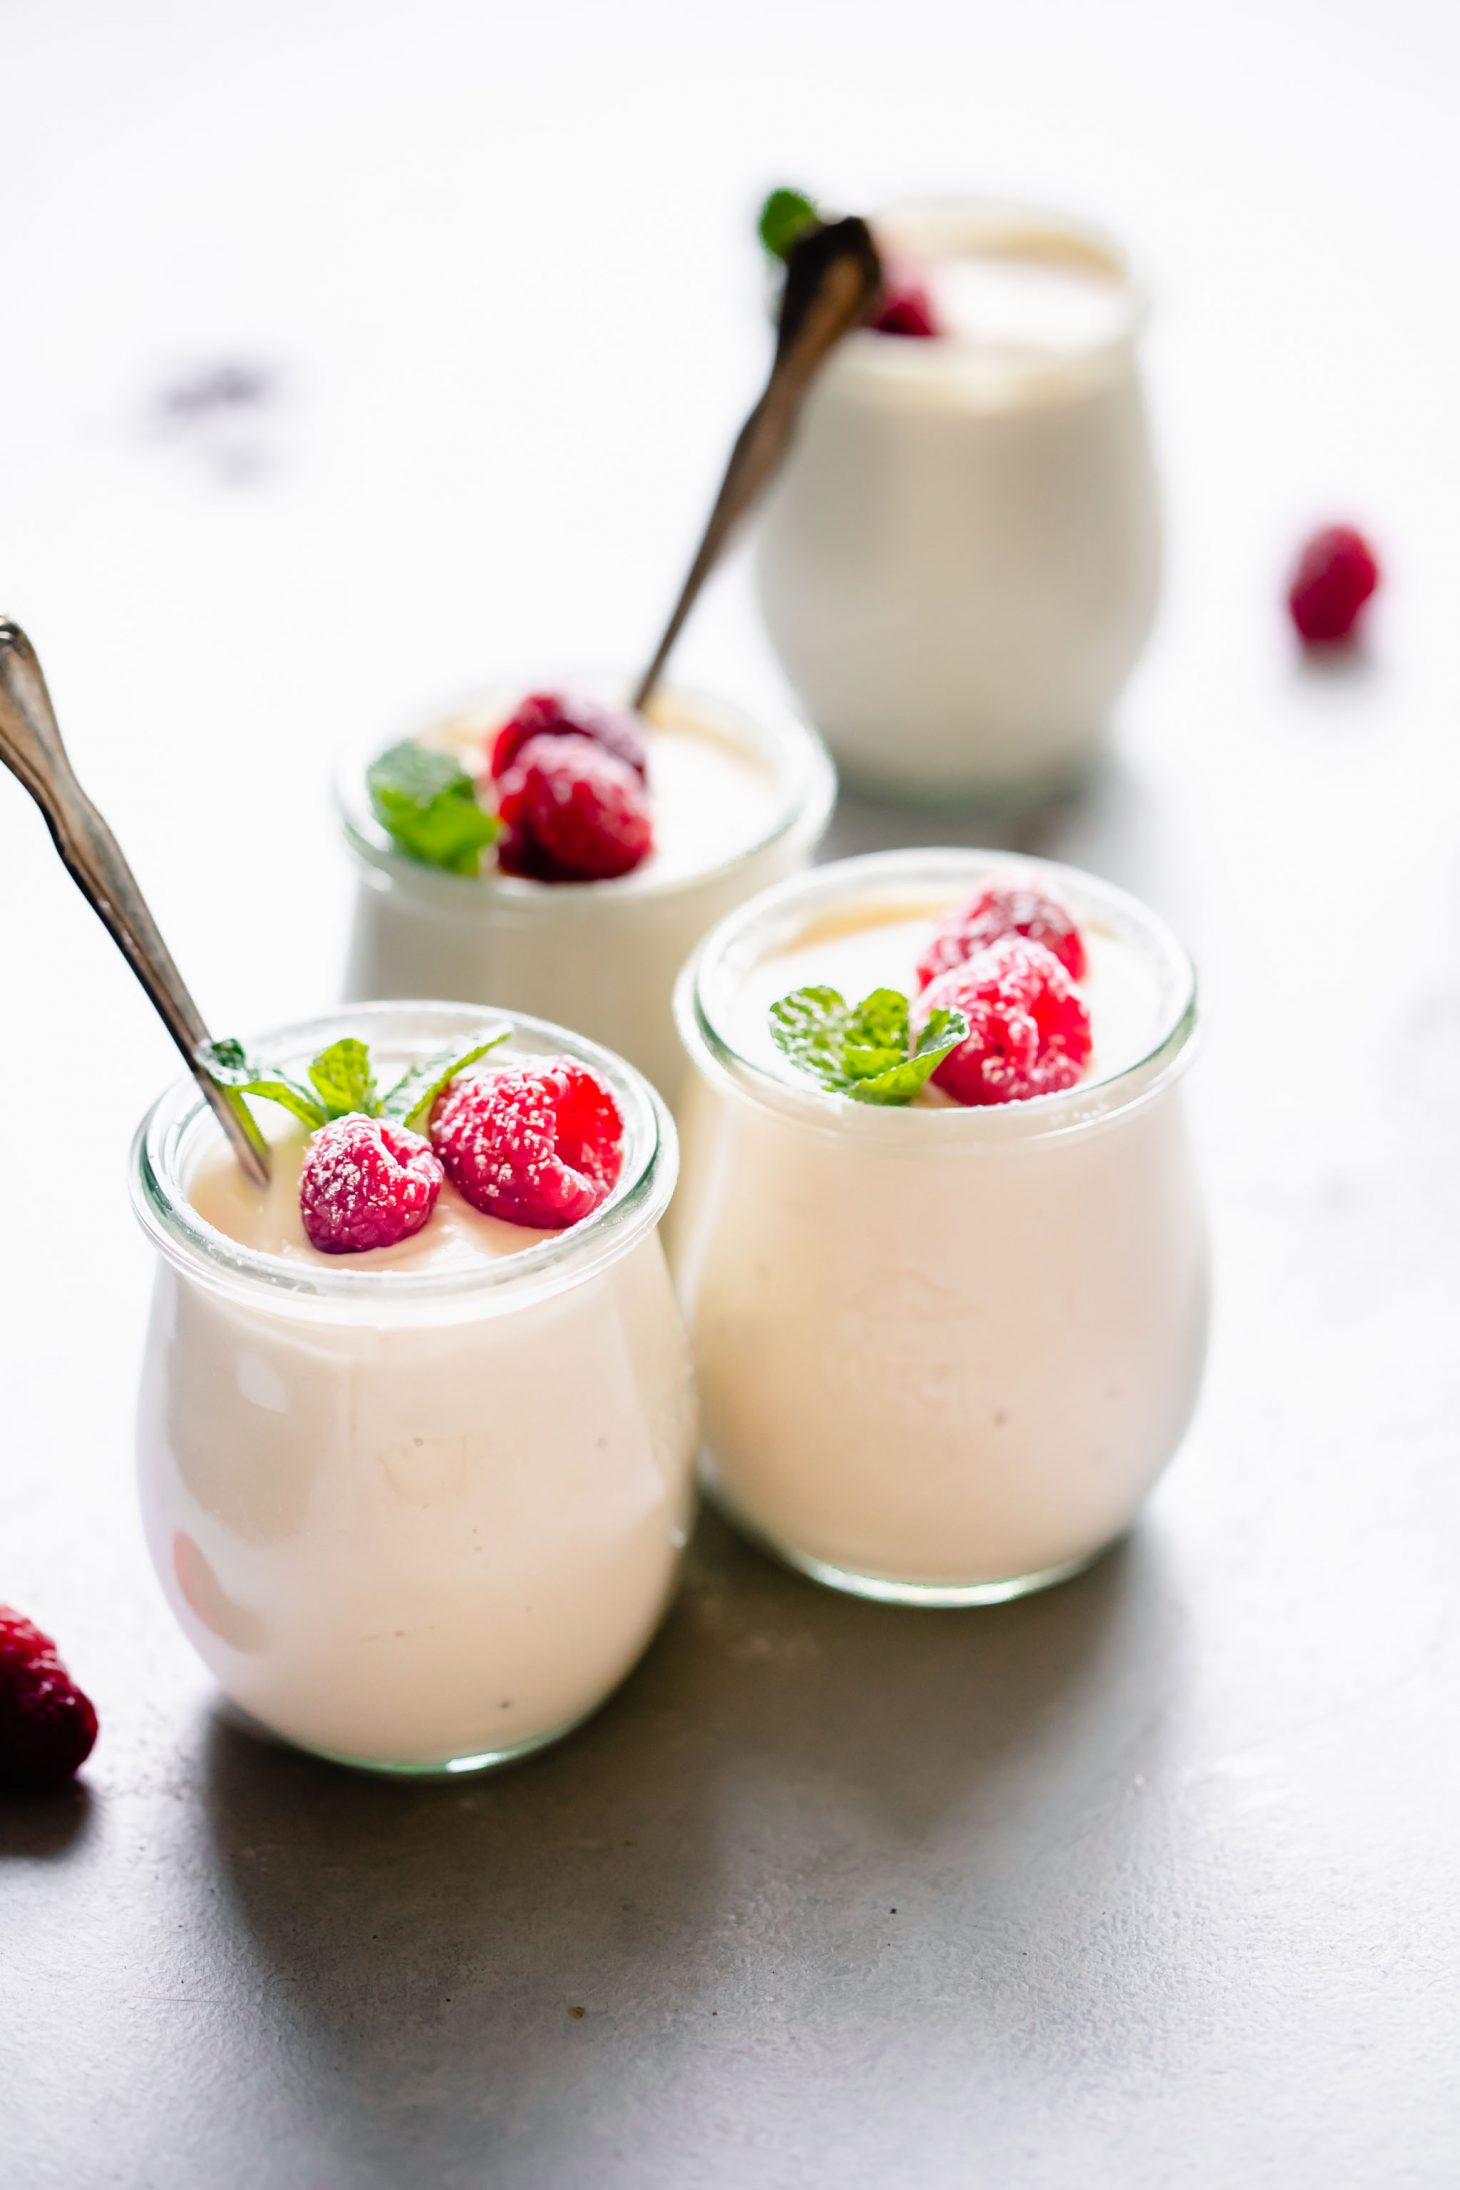 Four jars of ricotta mousse topped with raspberries.